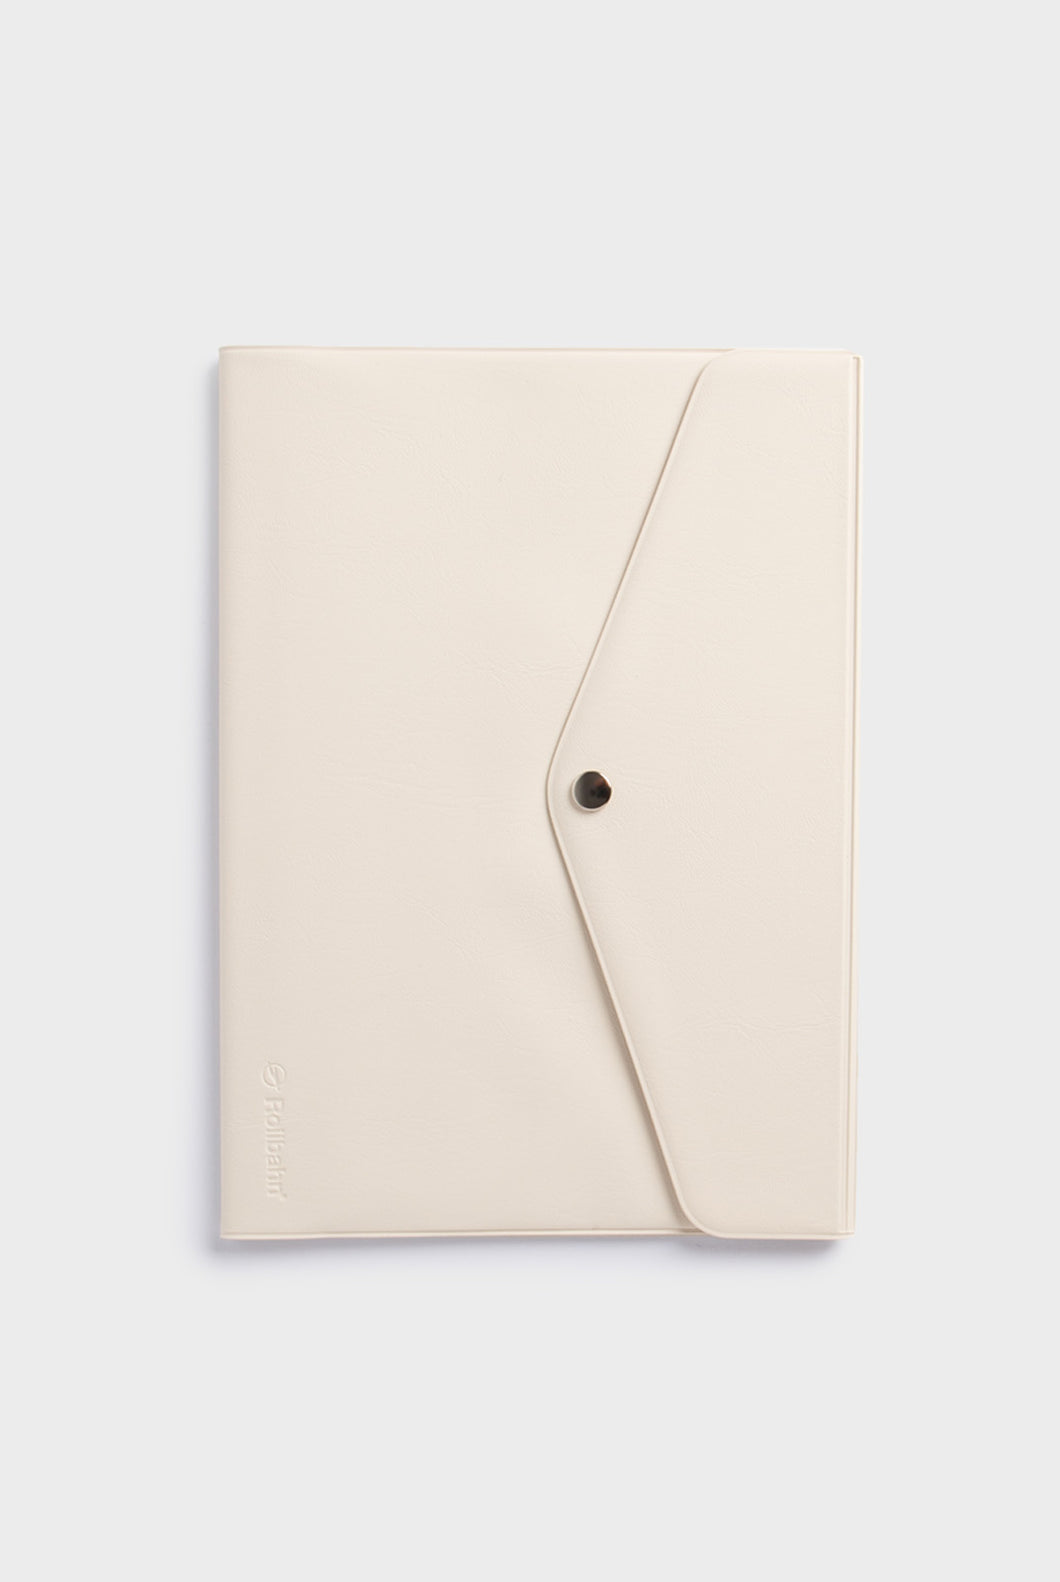 Delfonics - Rollbahn Notebook Cover with Flap - A5 - Cream